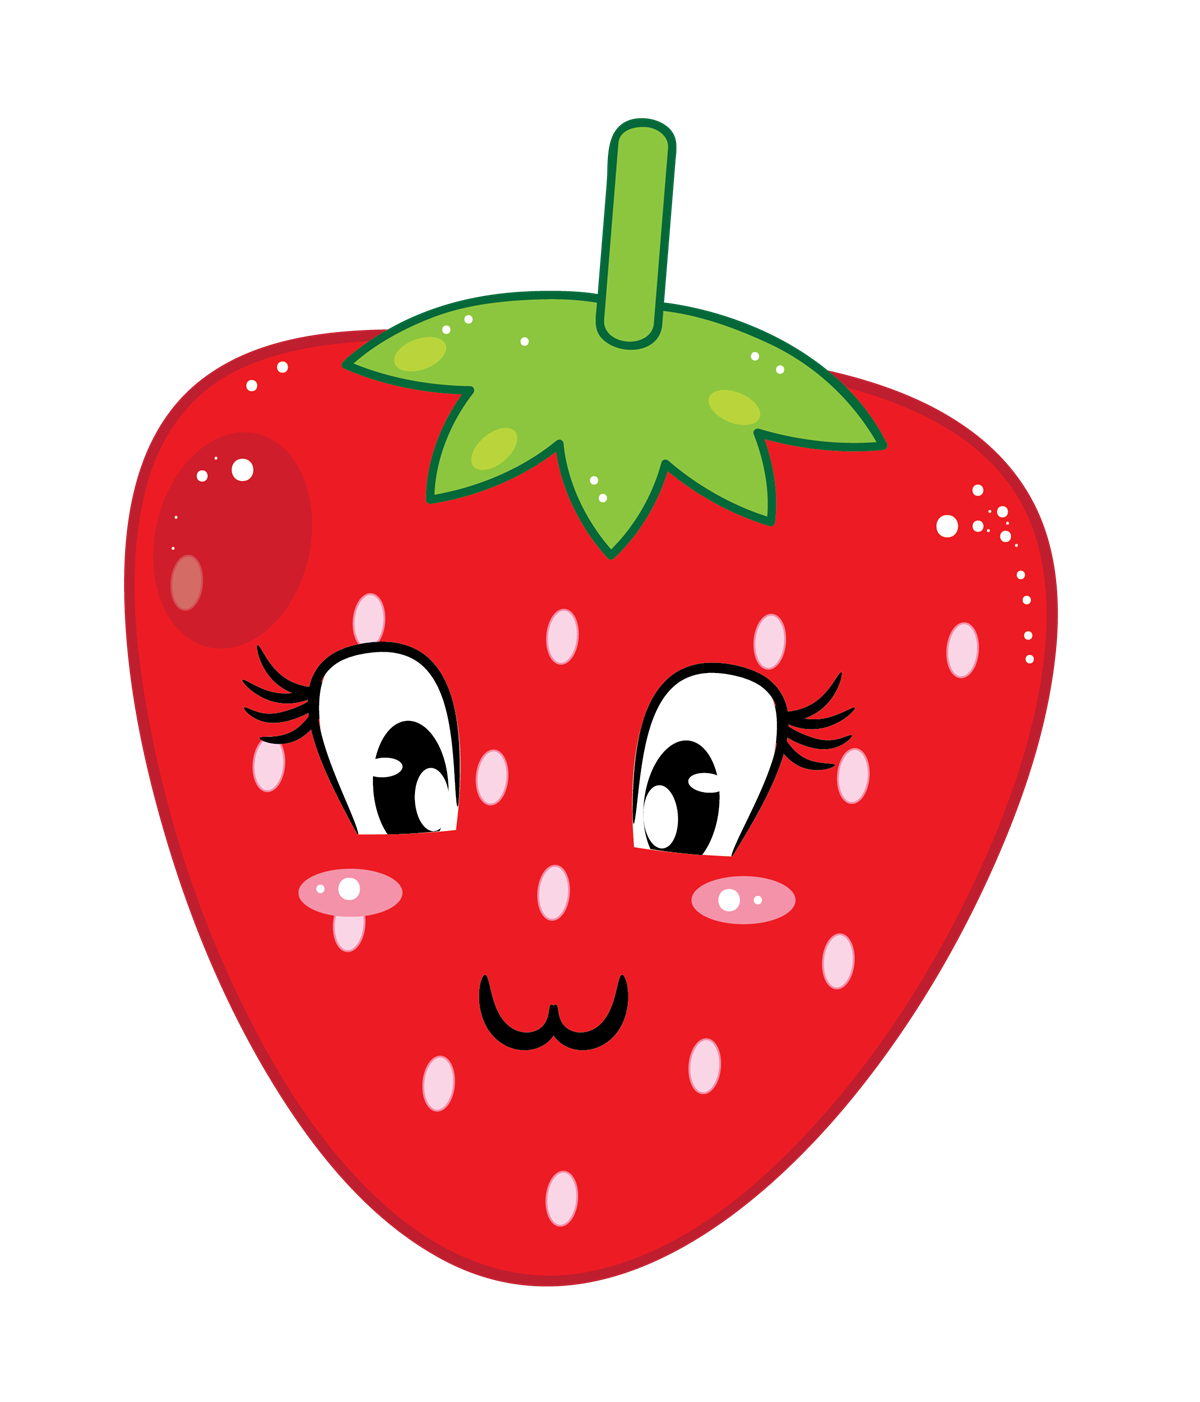 This Cute Cartoon Strawberry Clip Art Do-This cute cartoon strawberry clip art done in cool kawaii style is free for personal or commercial use. Add life to your projects by using this clip art.-18